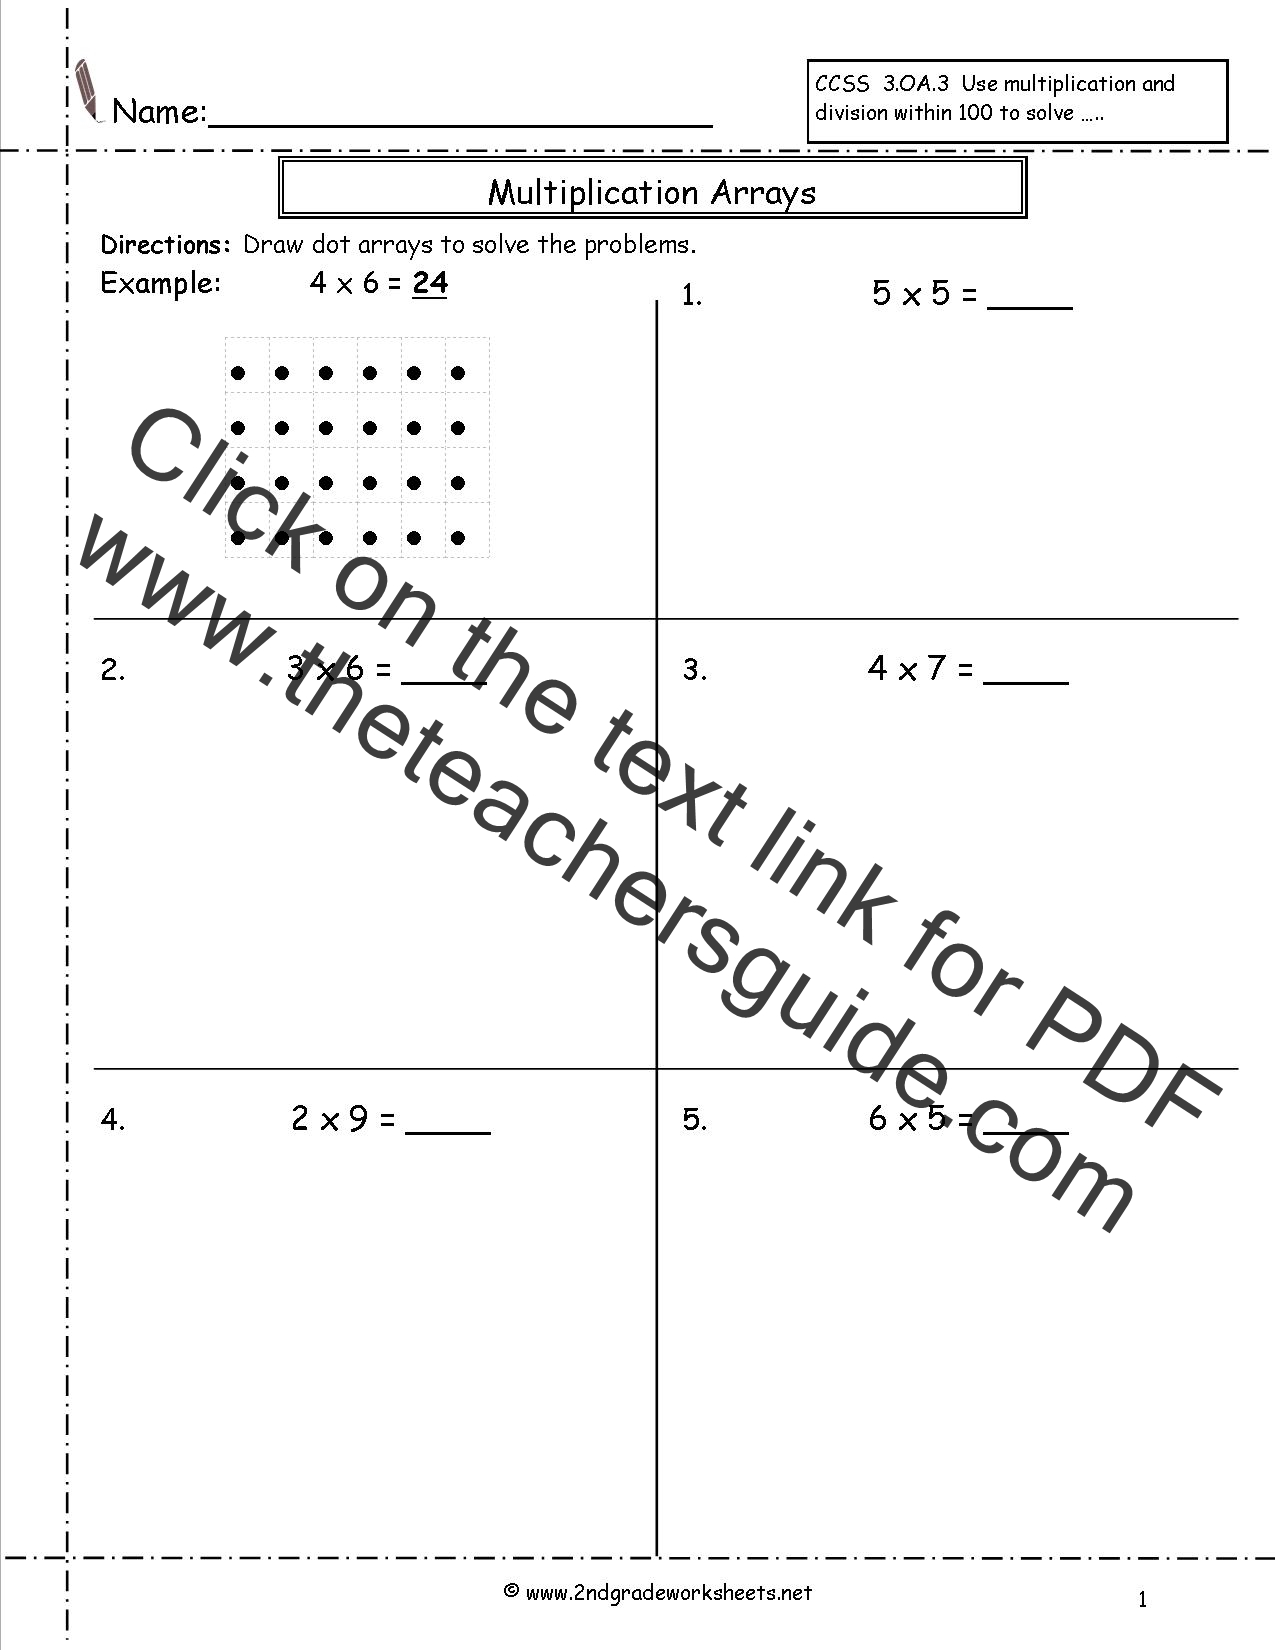 worksheet Multiplication Worksheets Free multidrawdotarrays jpg multiplication array worksheets